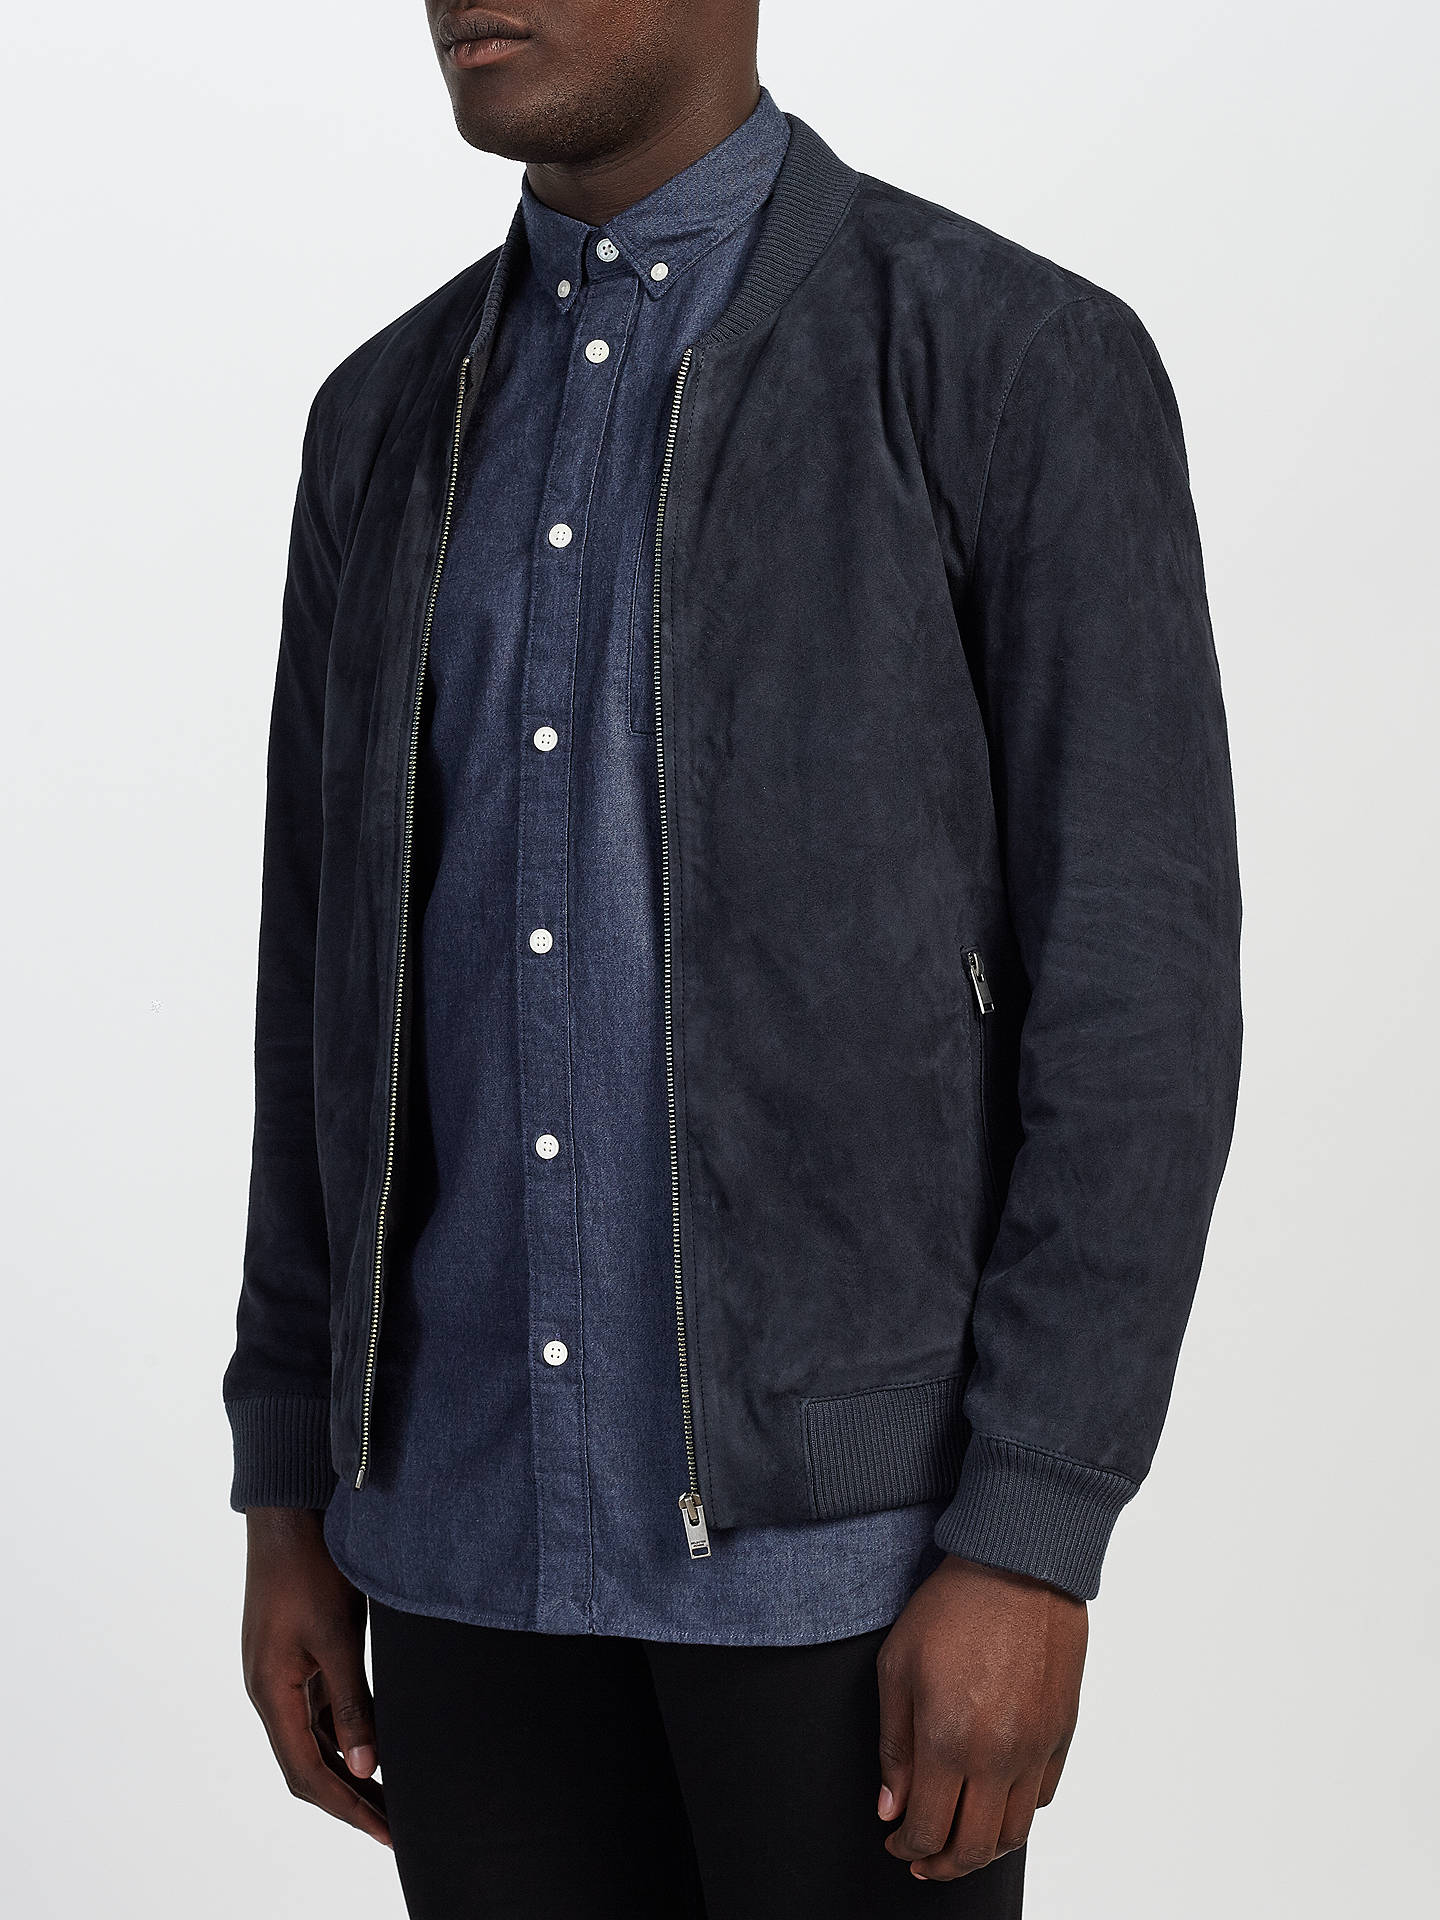 62213a9a1 Selected Homme Dublin Suede Bomber Jacket, Dark Navy at John Lewis ...